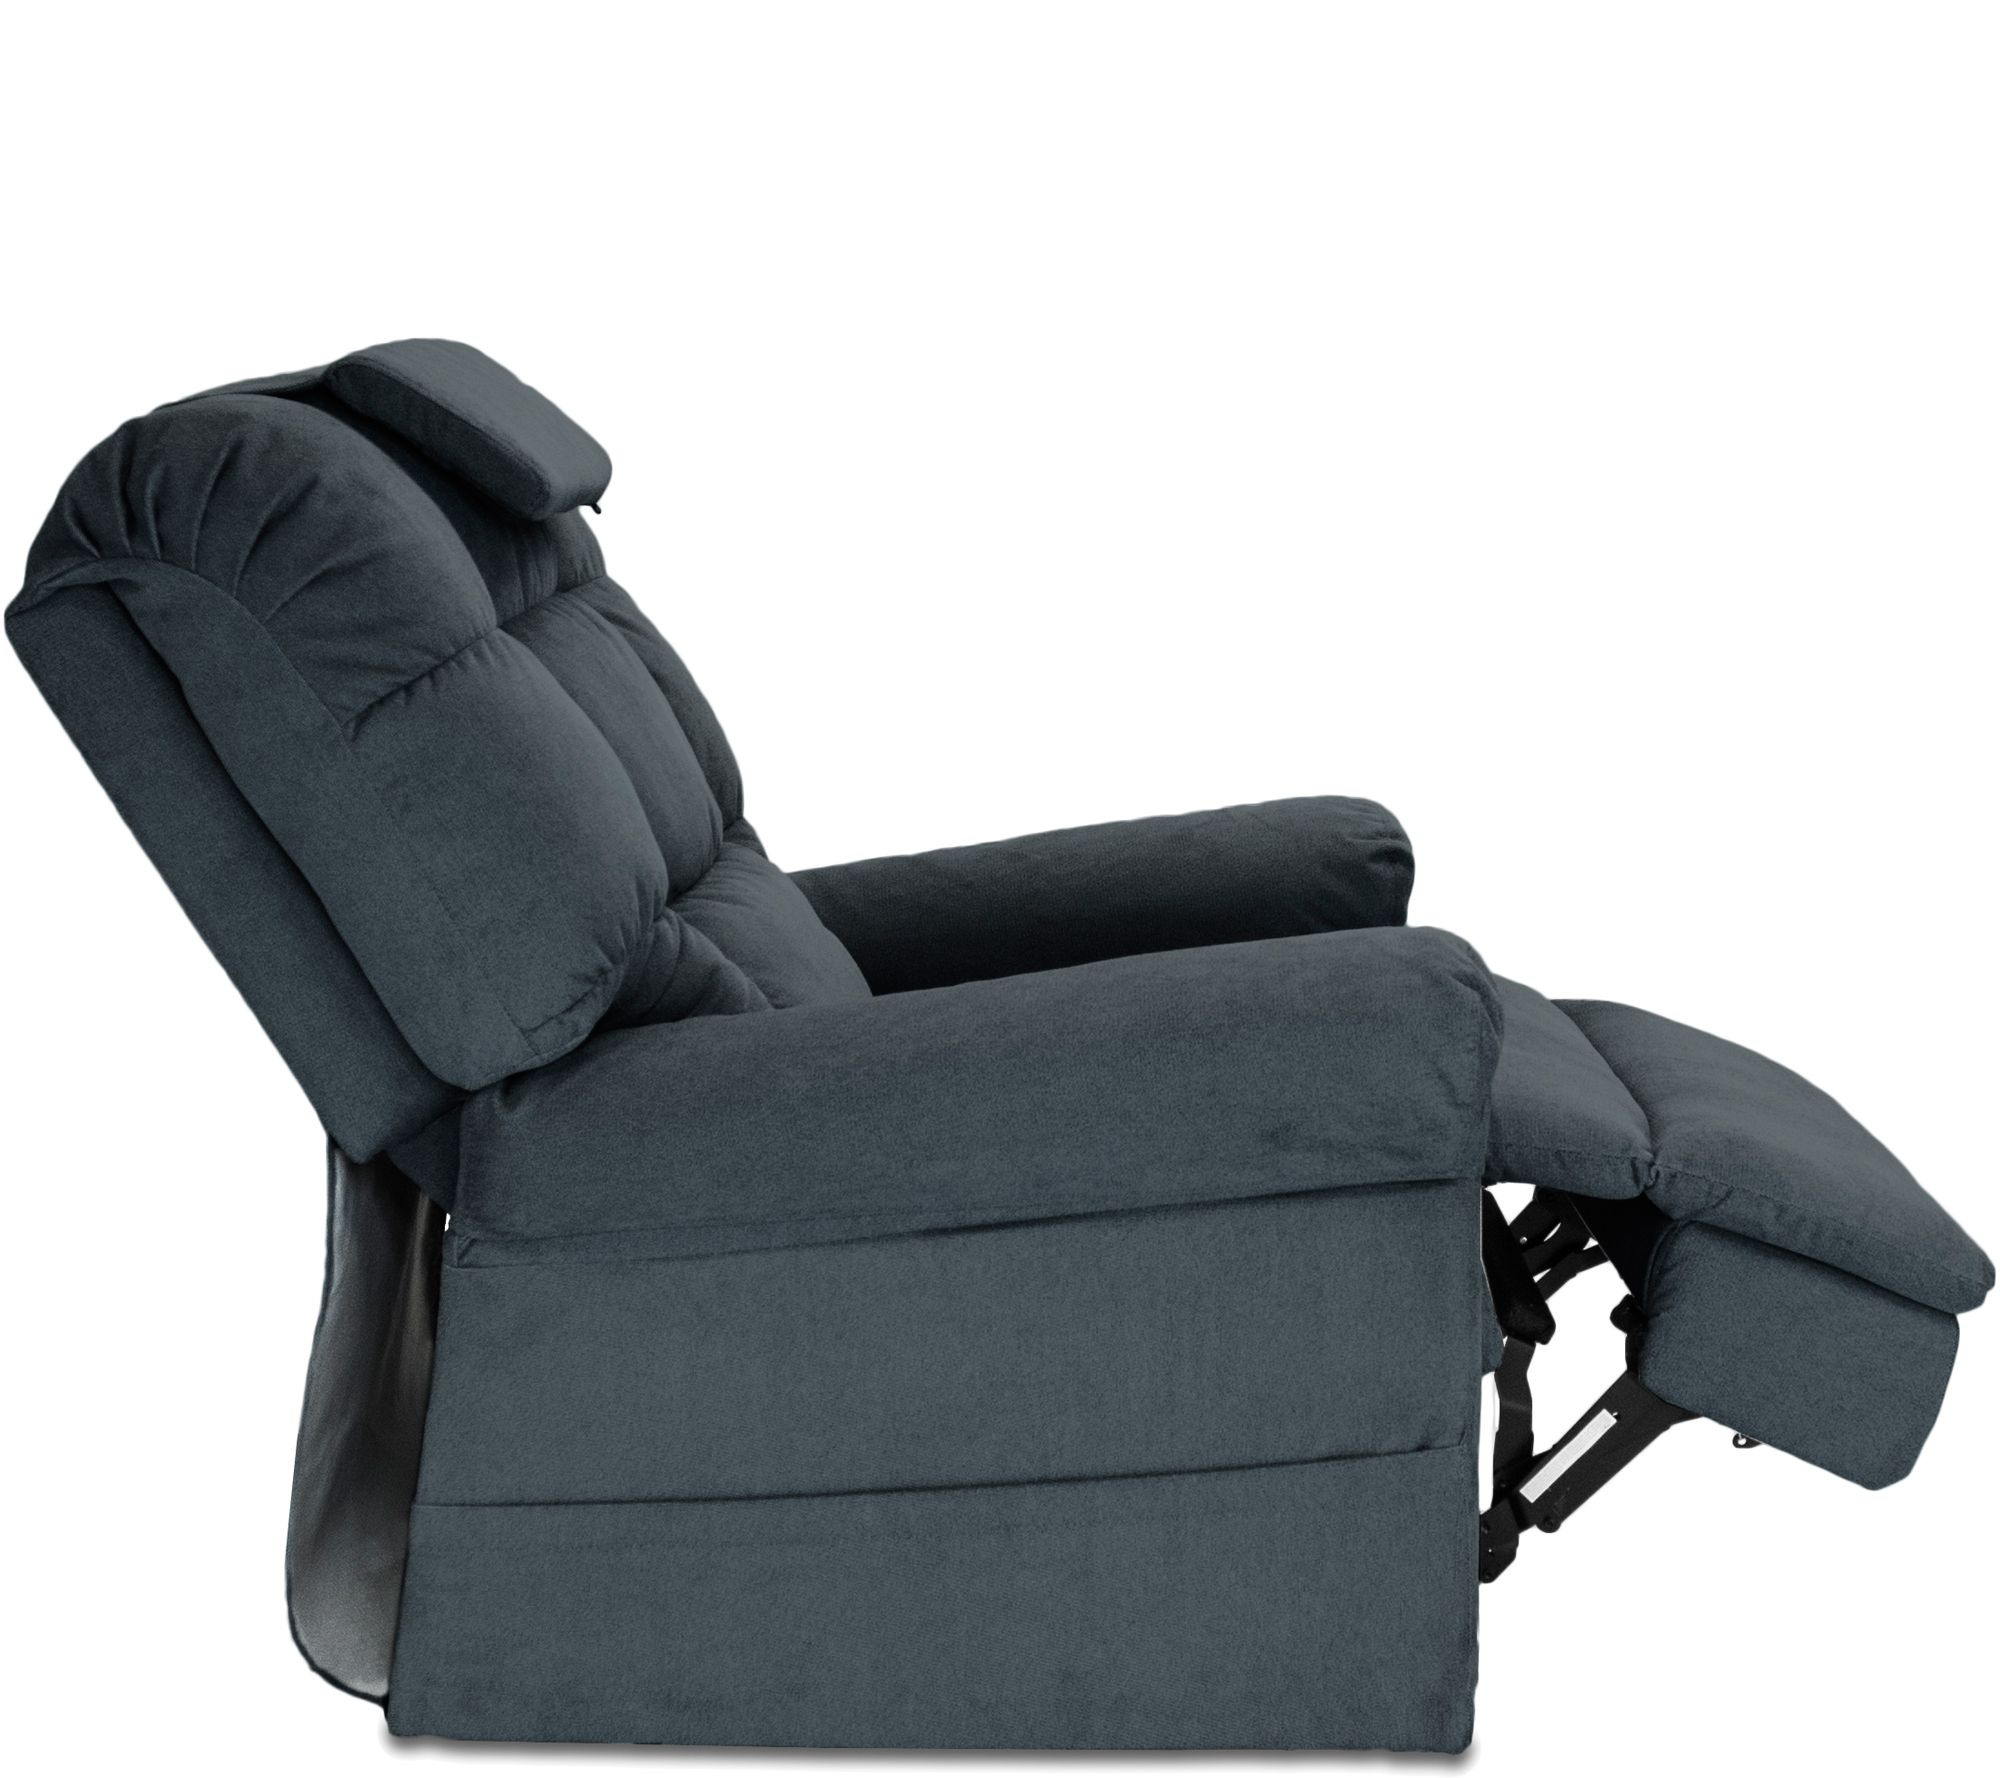 WiseLift Reclining Lift Chair with Massage and Heat Page 1 — QVC